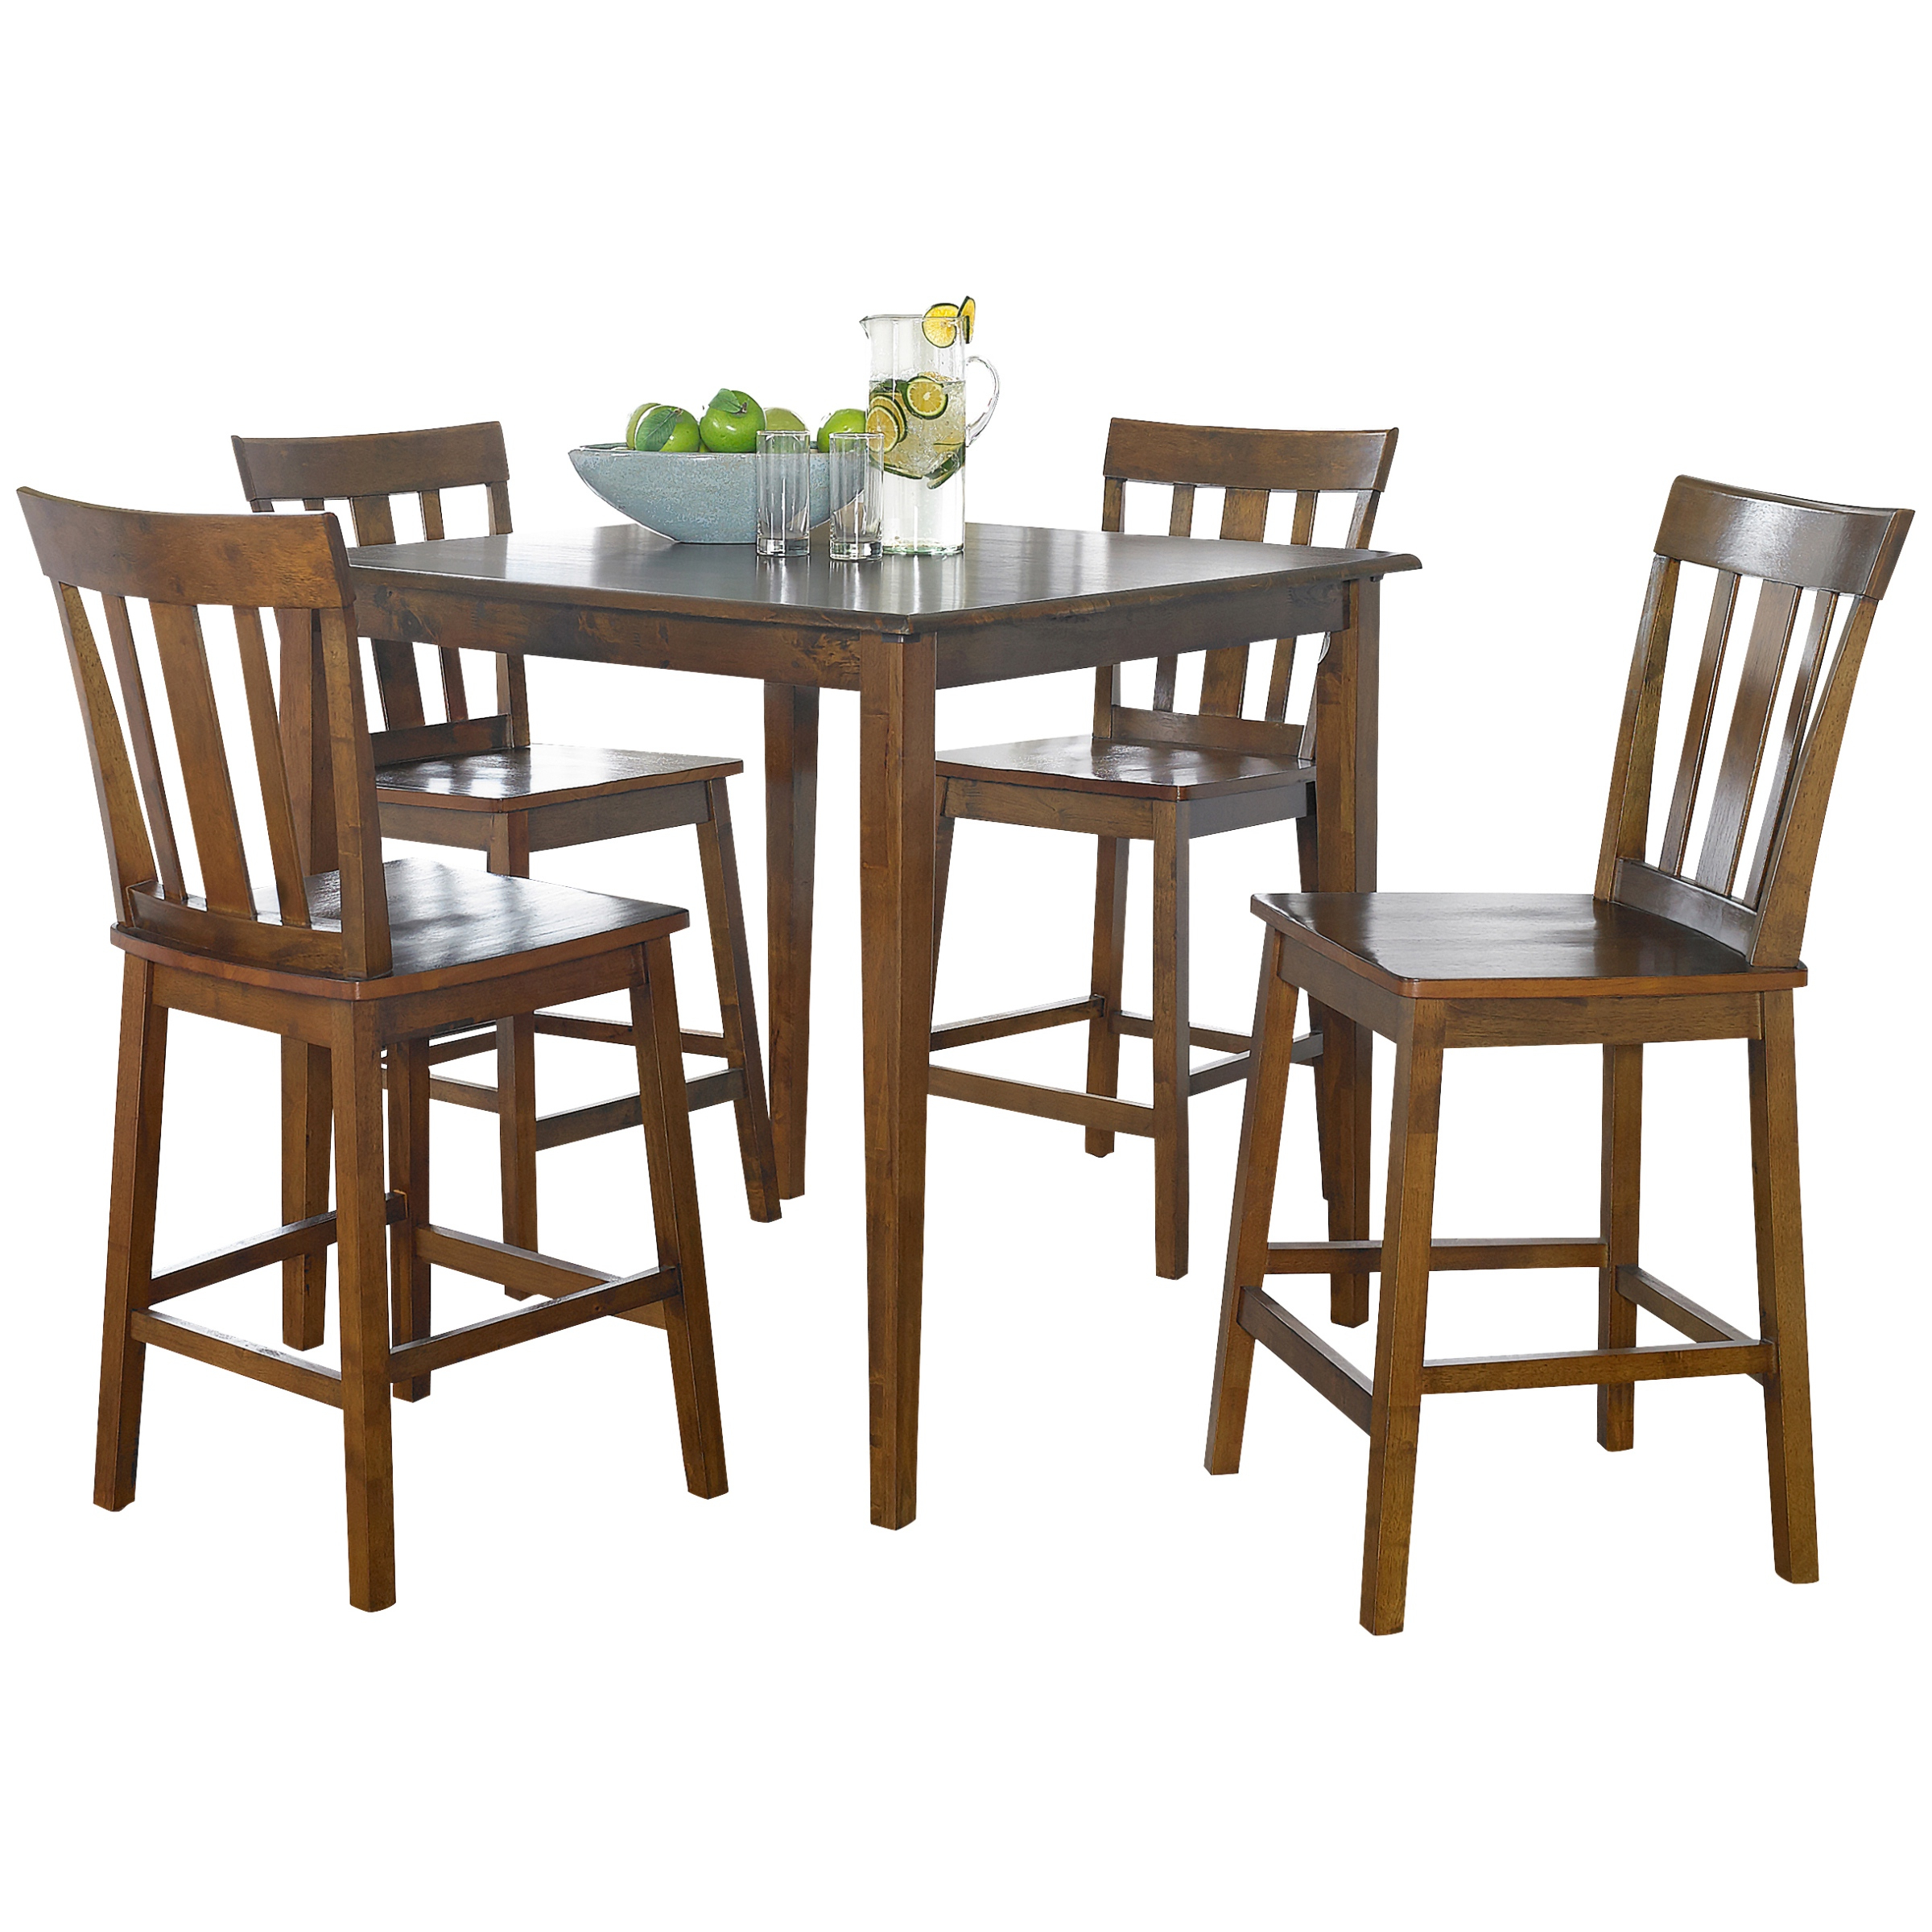 Newest Mainstays 5 Piece Mission Counter Height Dining Set – Walmart Regarding Goodman 5 Piece Solid Wood Dining Sets (Set Of 5) (View 18 of 20)